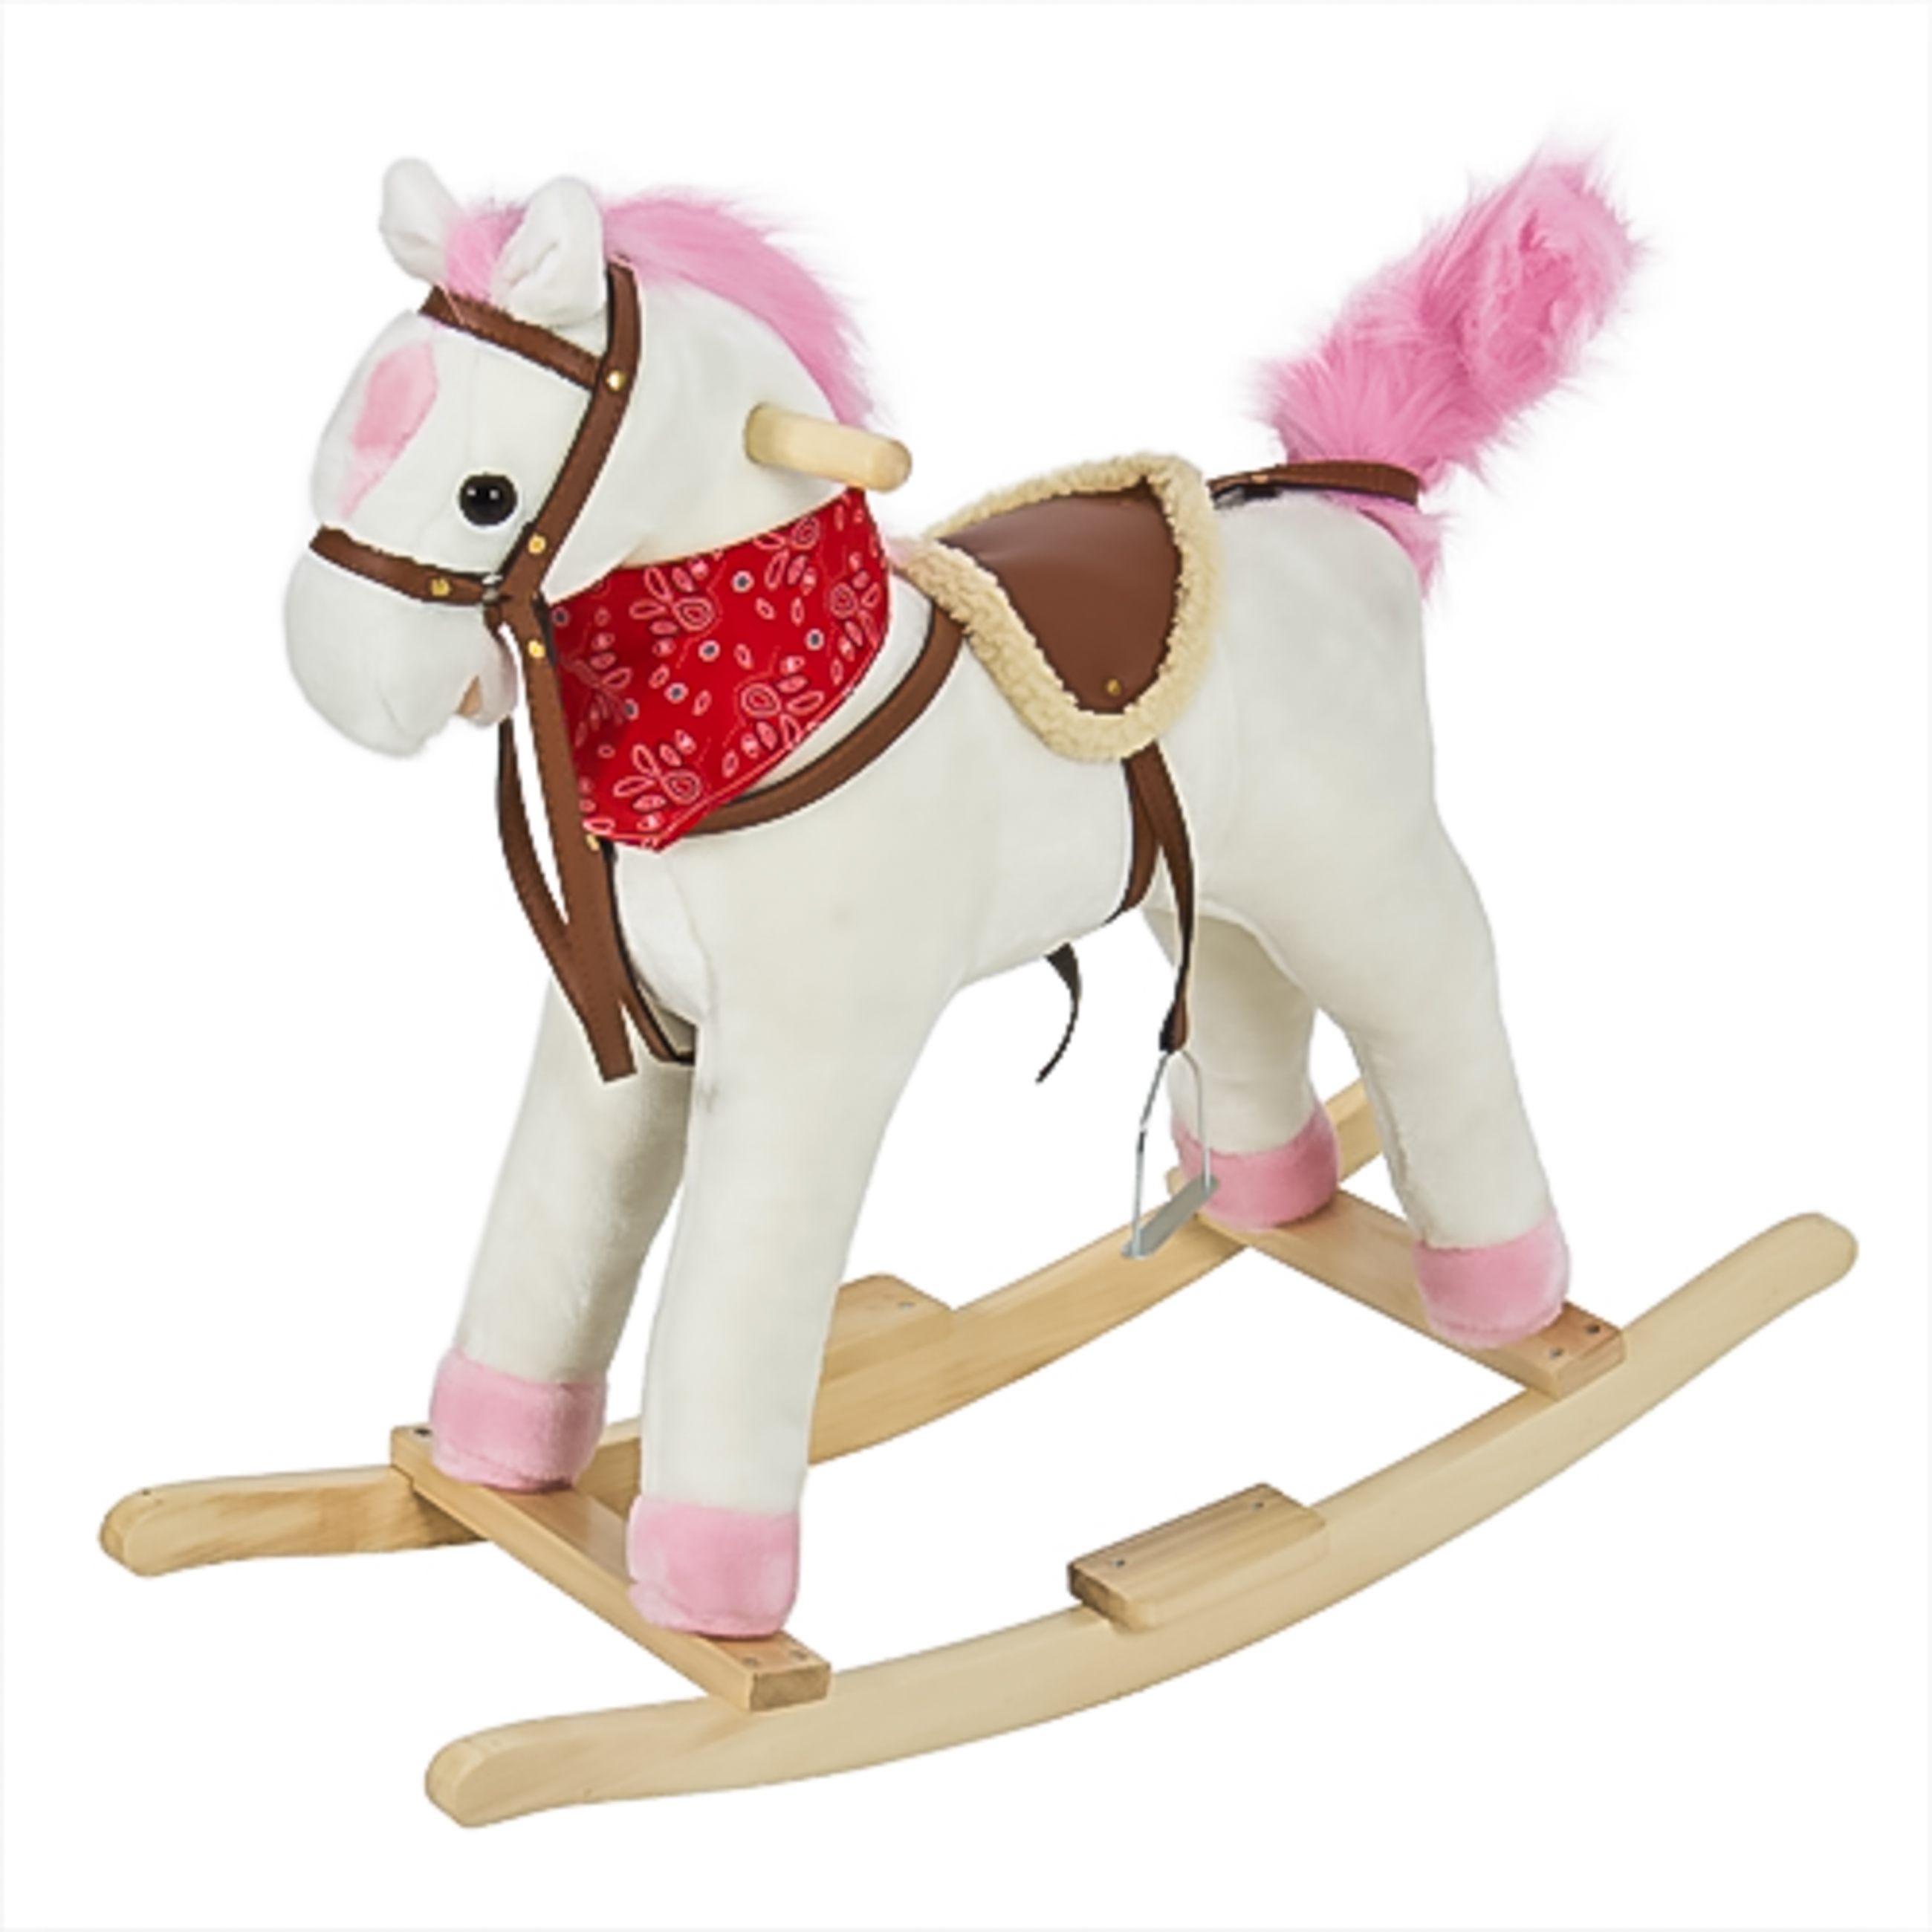 Best Choice Products Plush Rocking Horse Pony Ride On Toy w/ Sounds - White